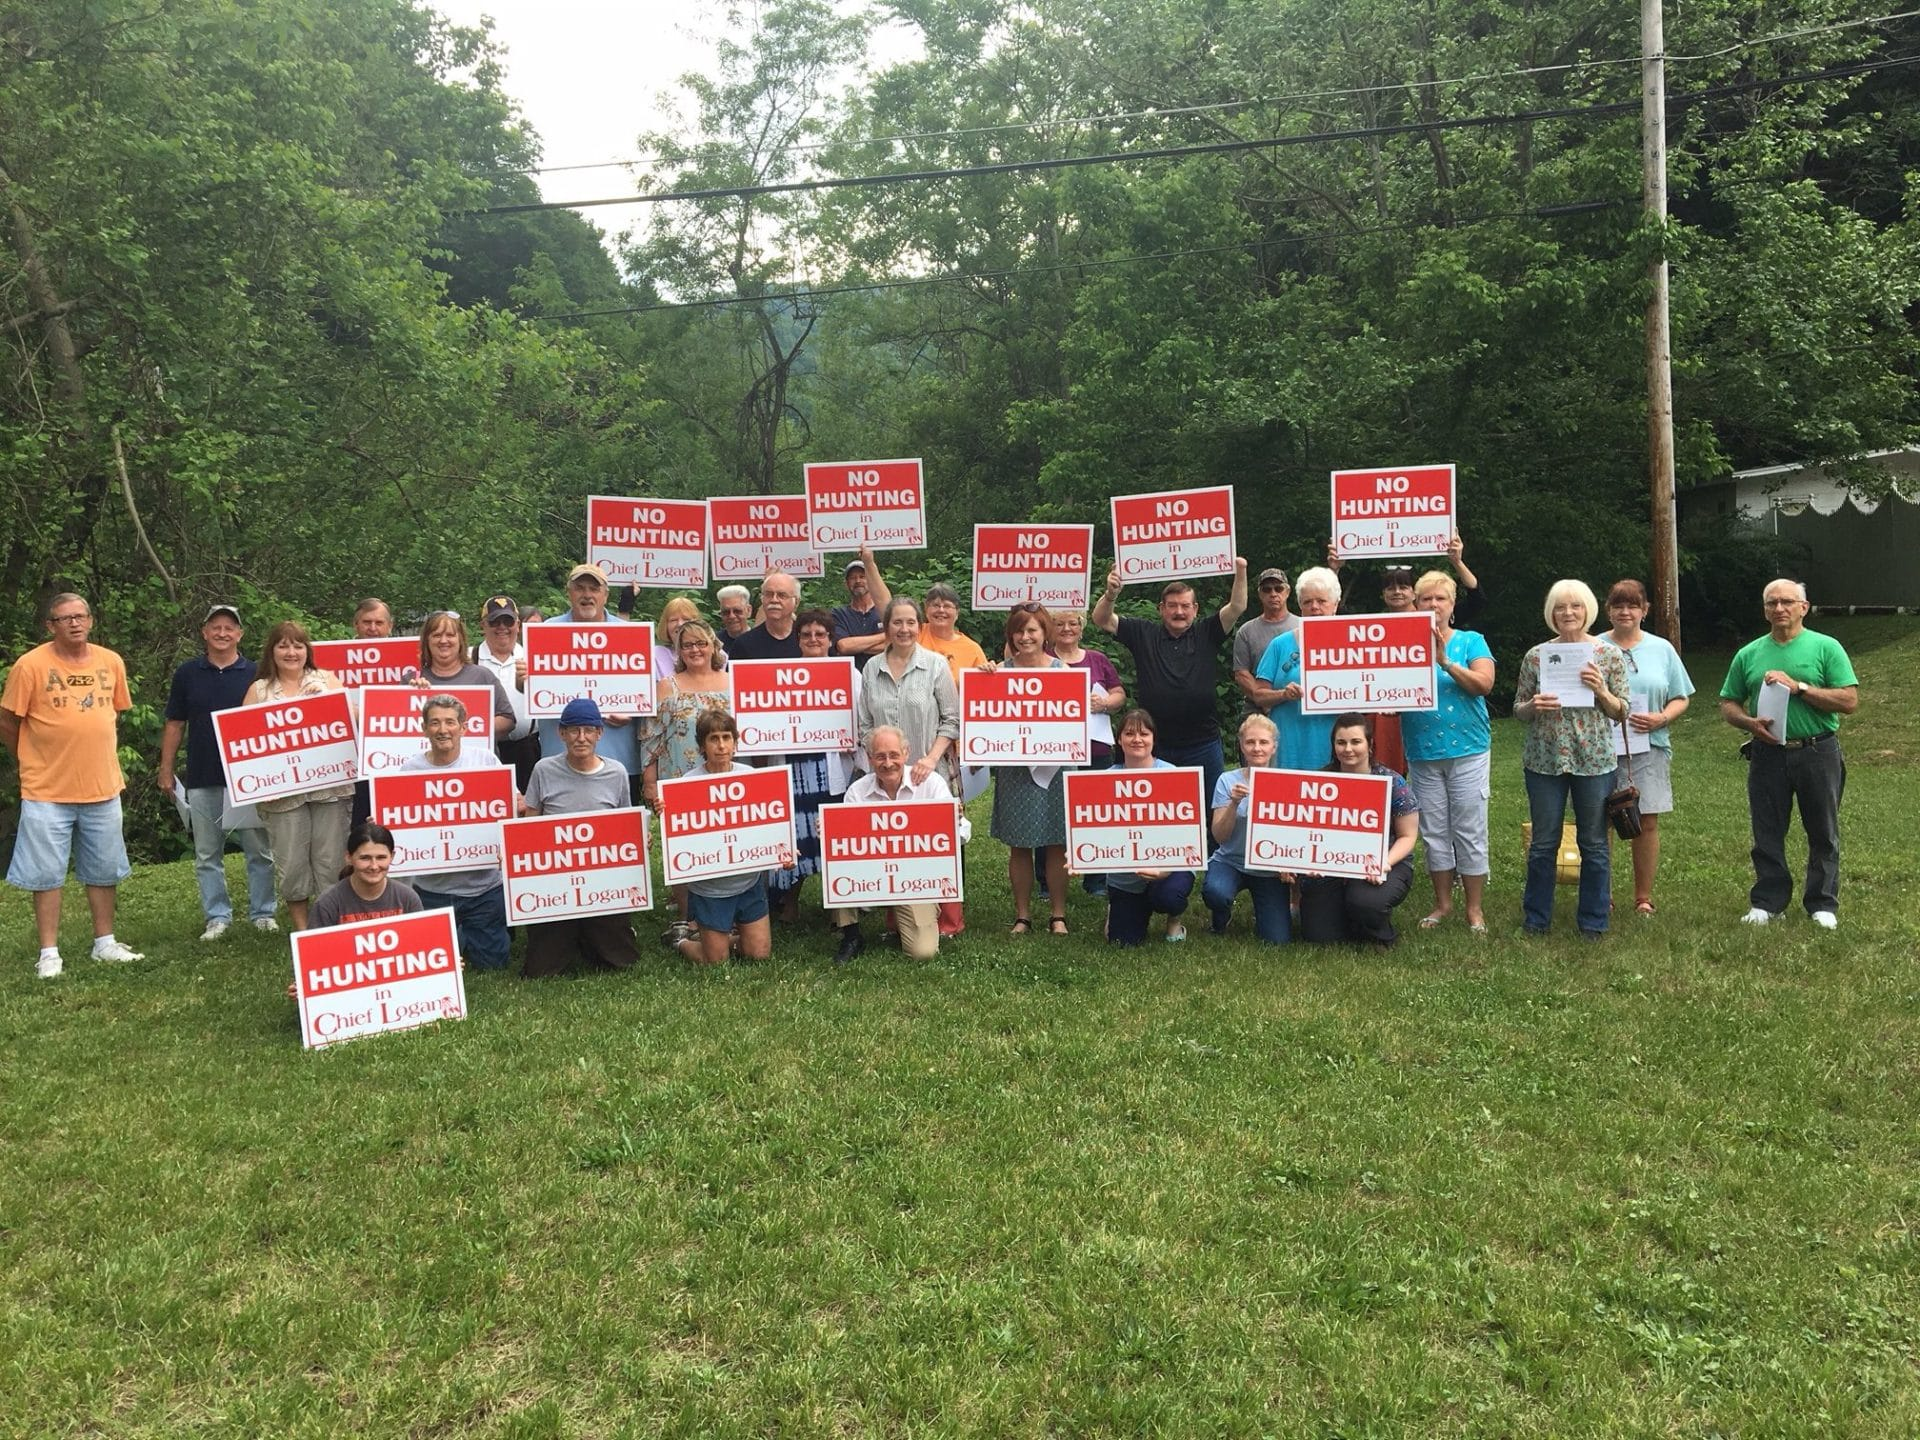 """Large group of protesters holding signs that say """"No Hunting in Chief Logan State Park"""""""